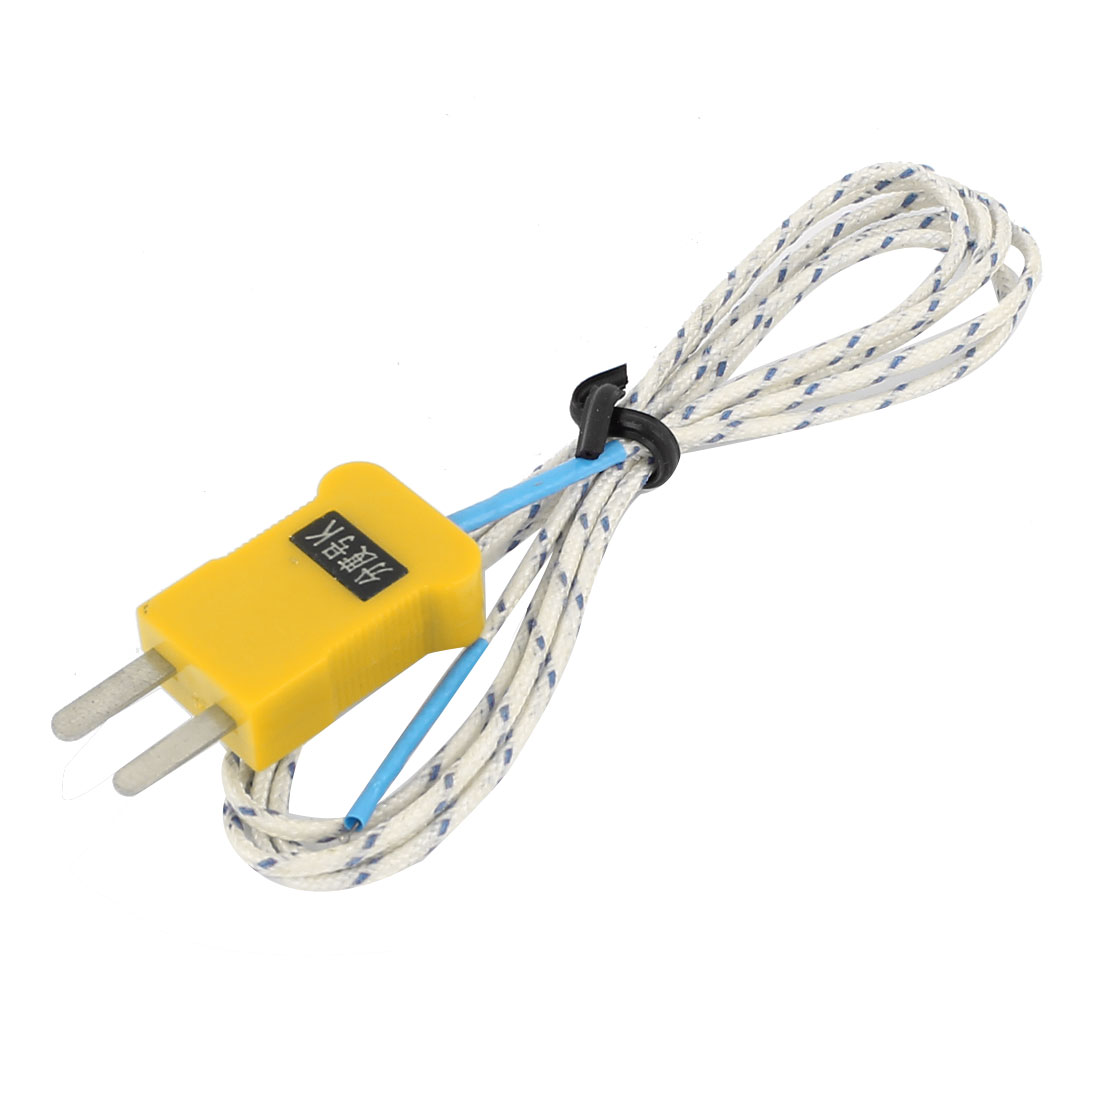 K Type Temperature Testing Thermocouple Sensor Probe Wire 1Meter 3.3Ft